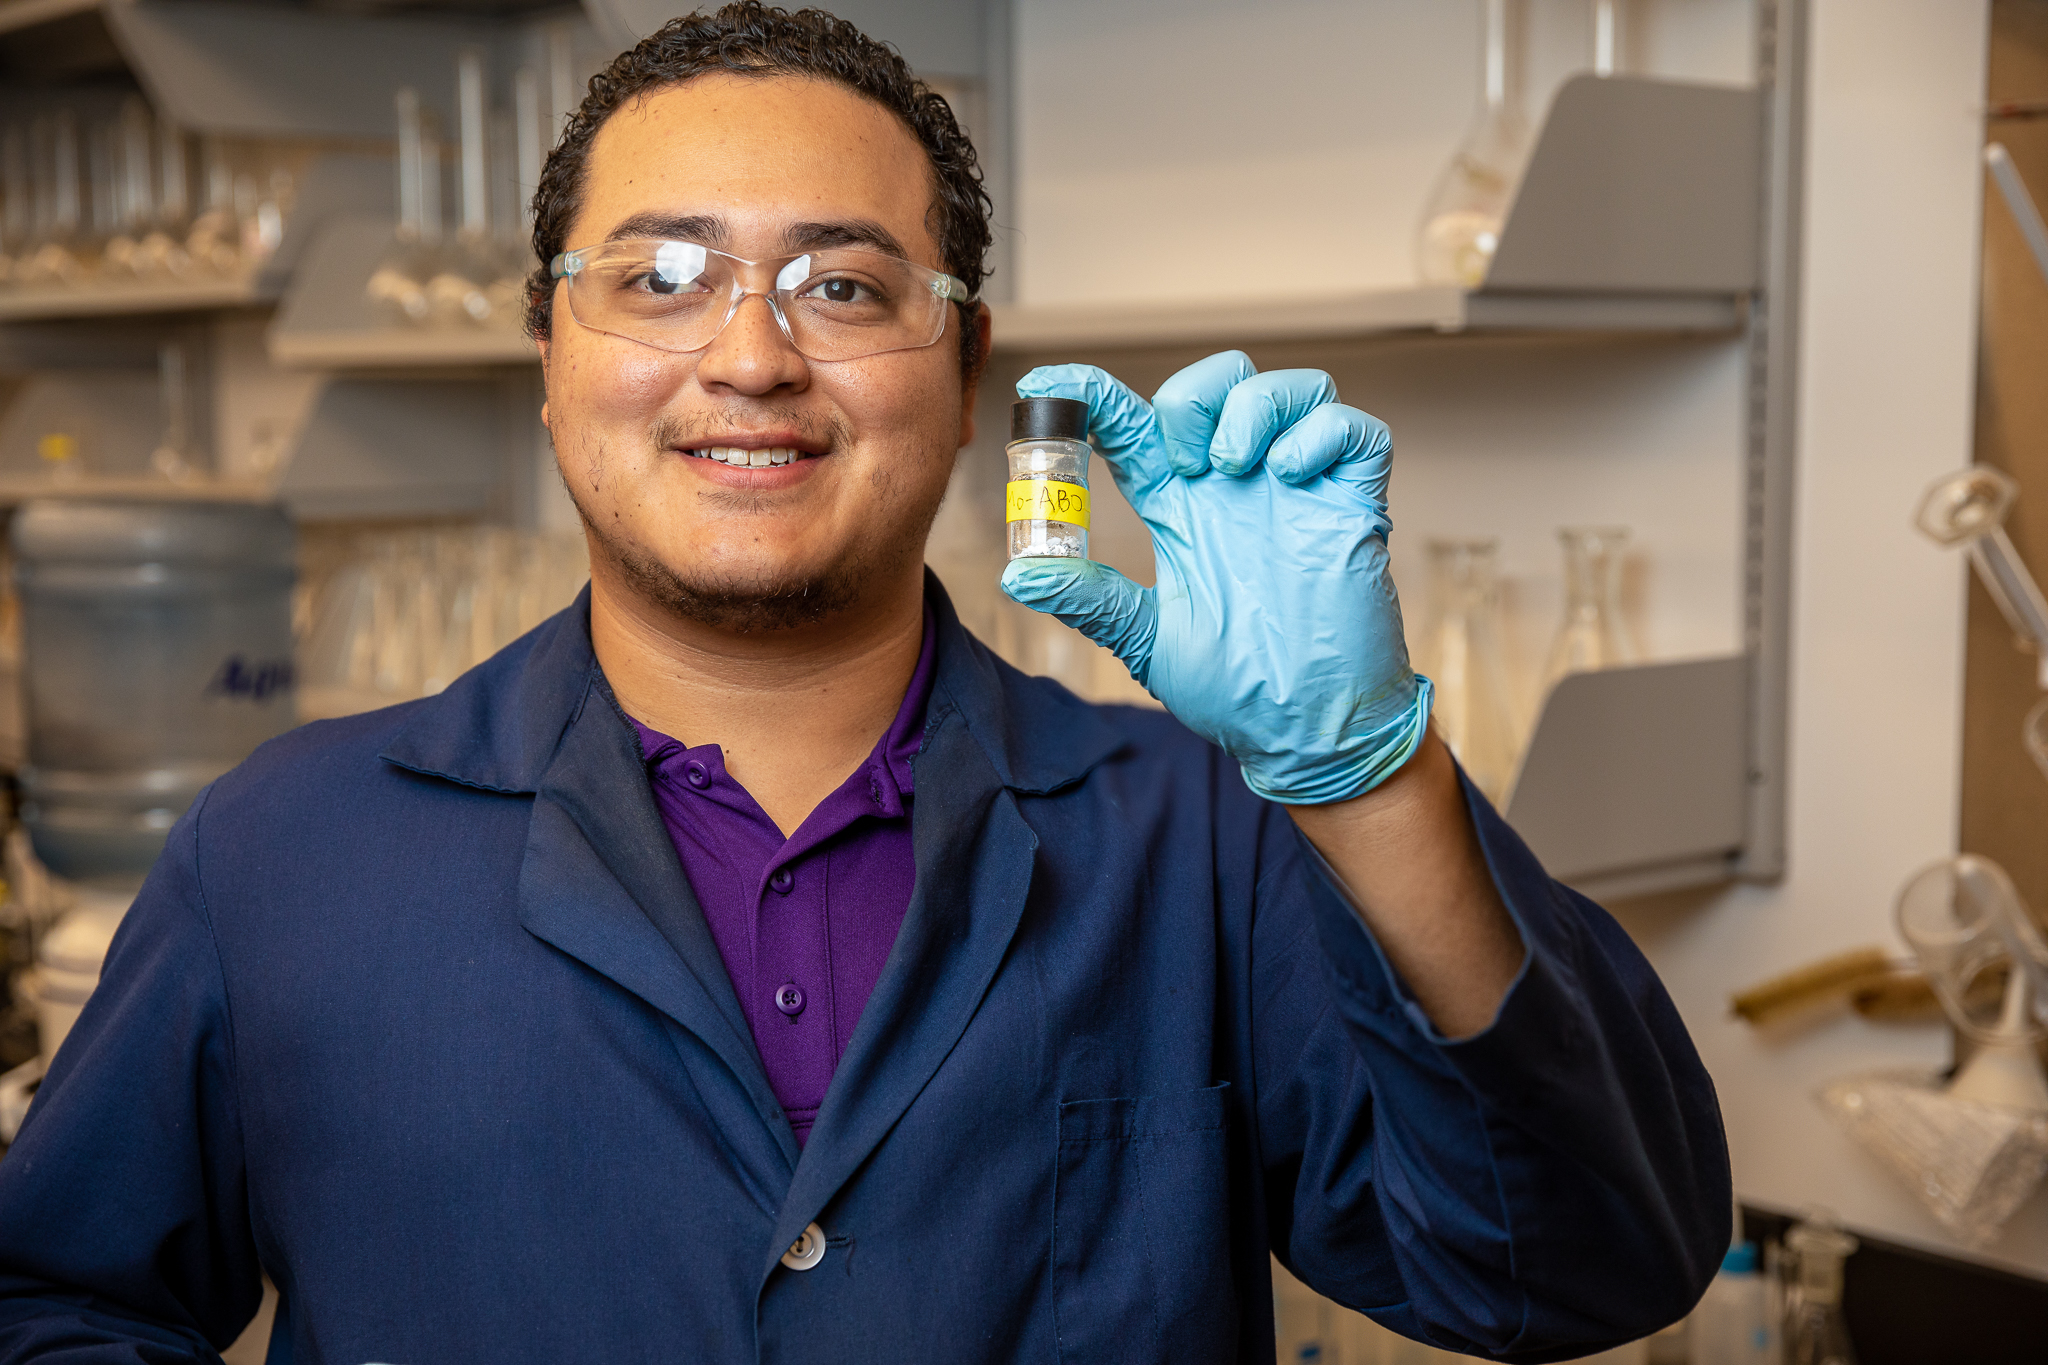 Diego Zometa Paniagua is a research scientist in ACU's NEXT Lab.